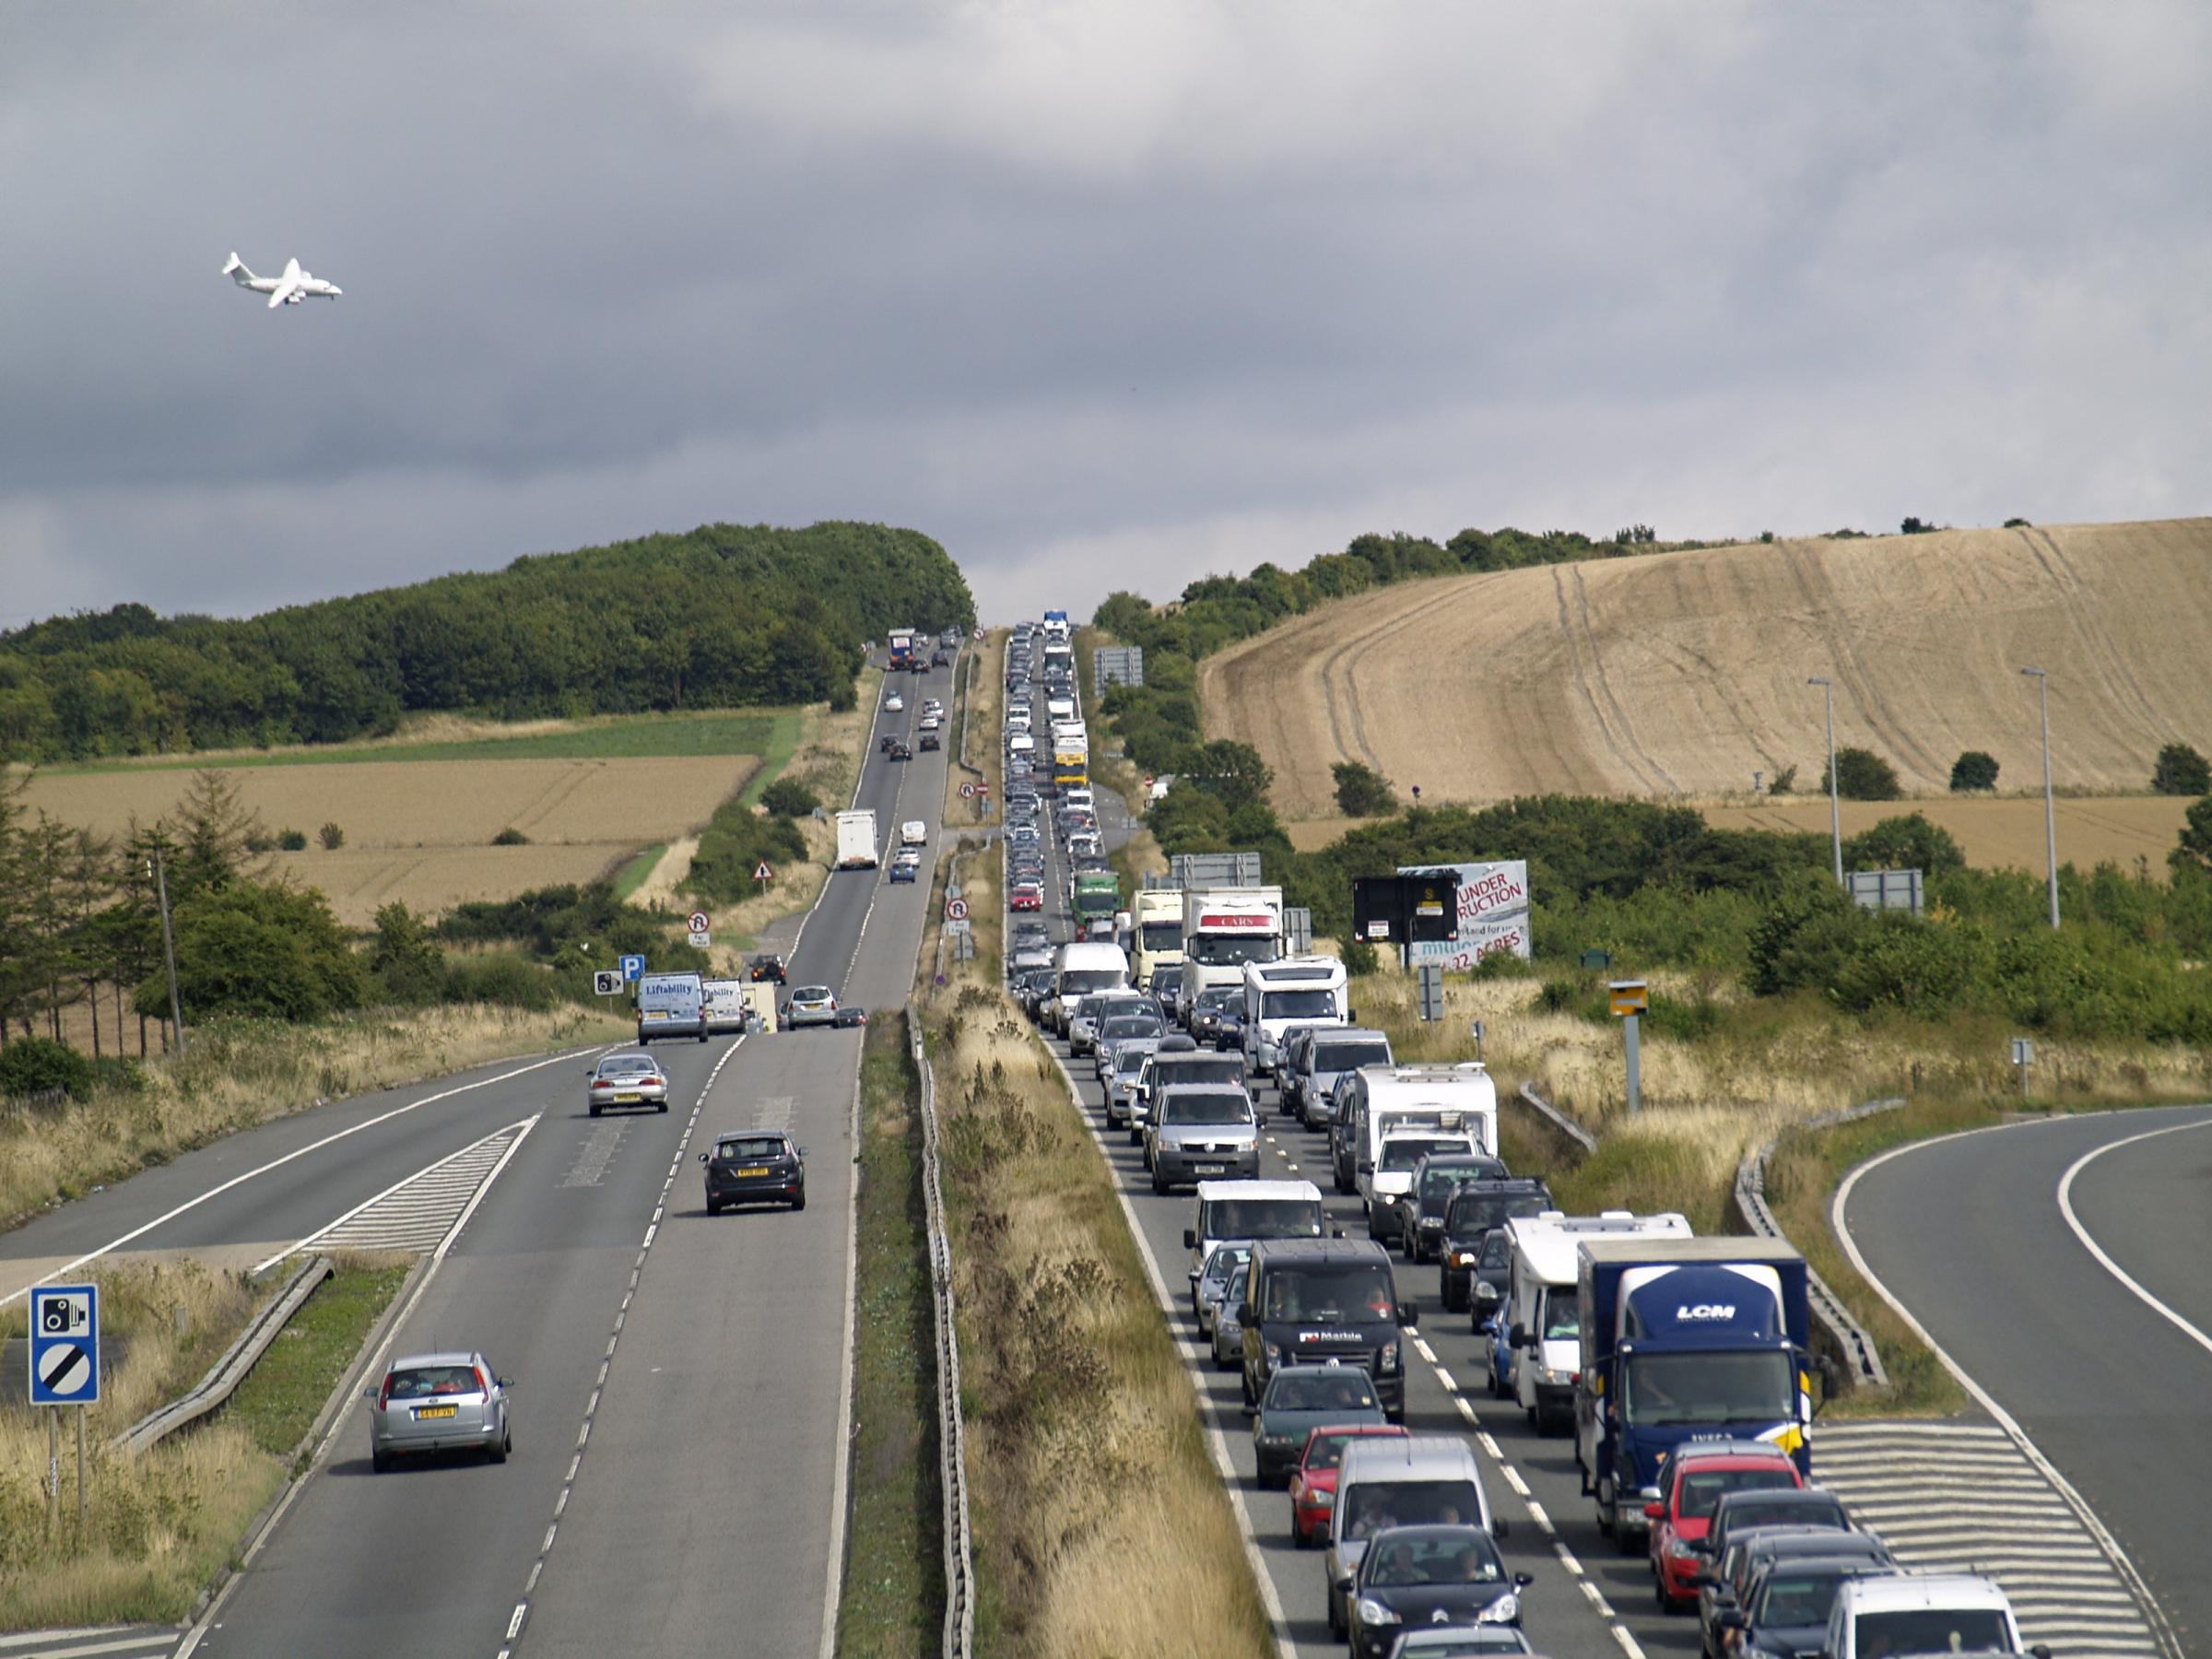 Traffic on the A303